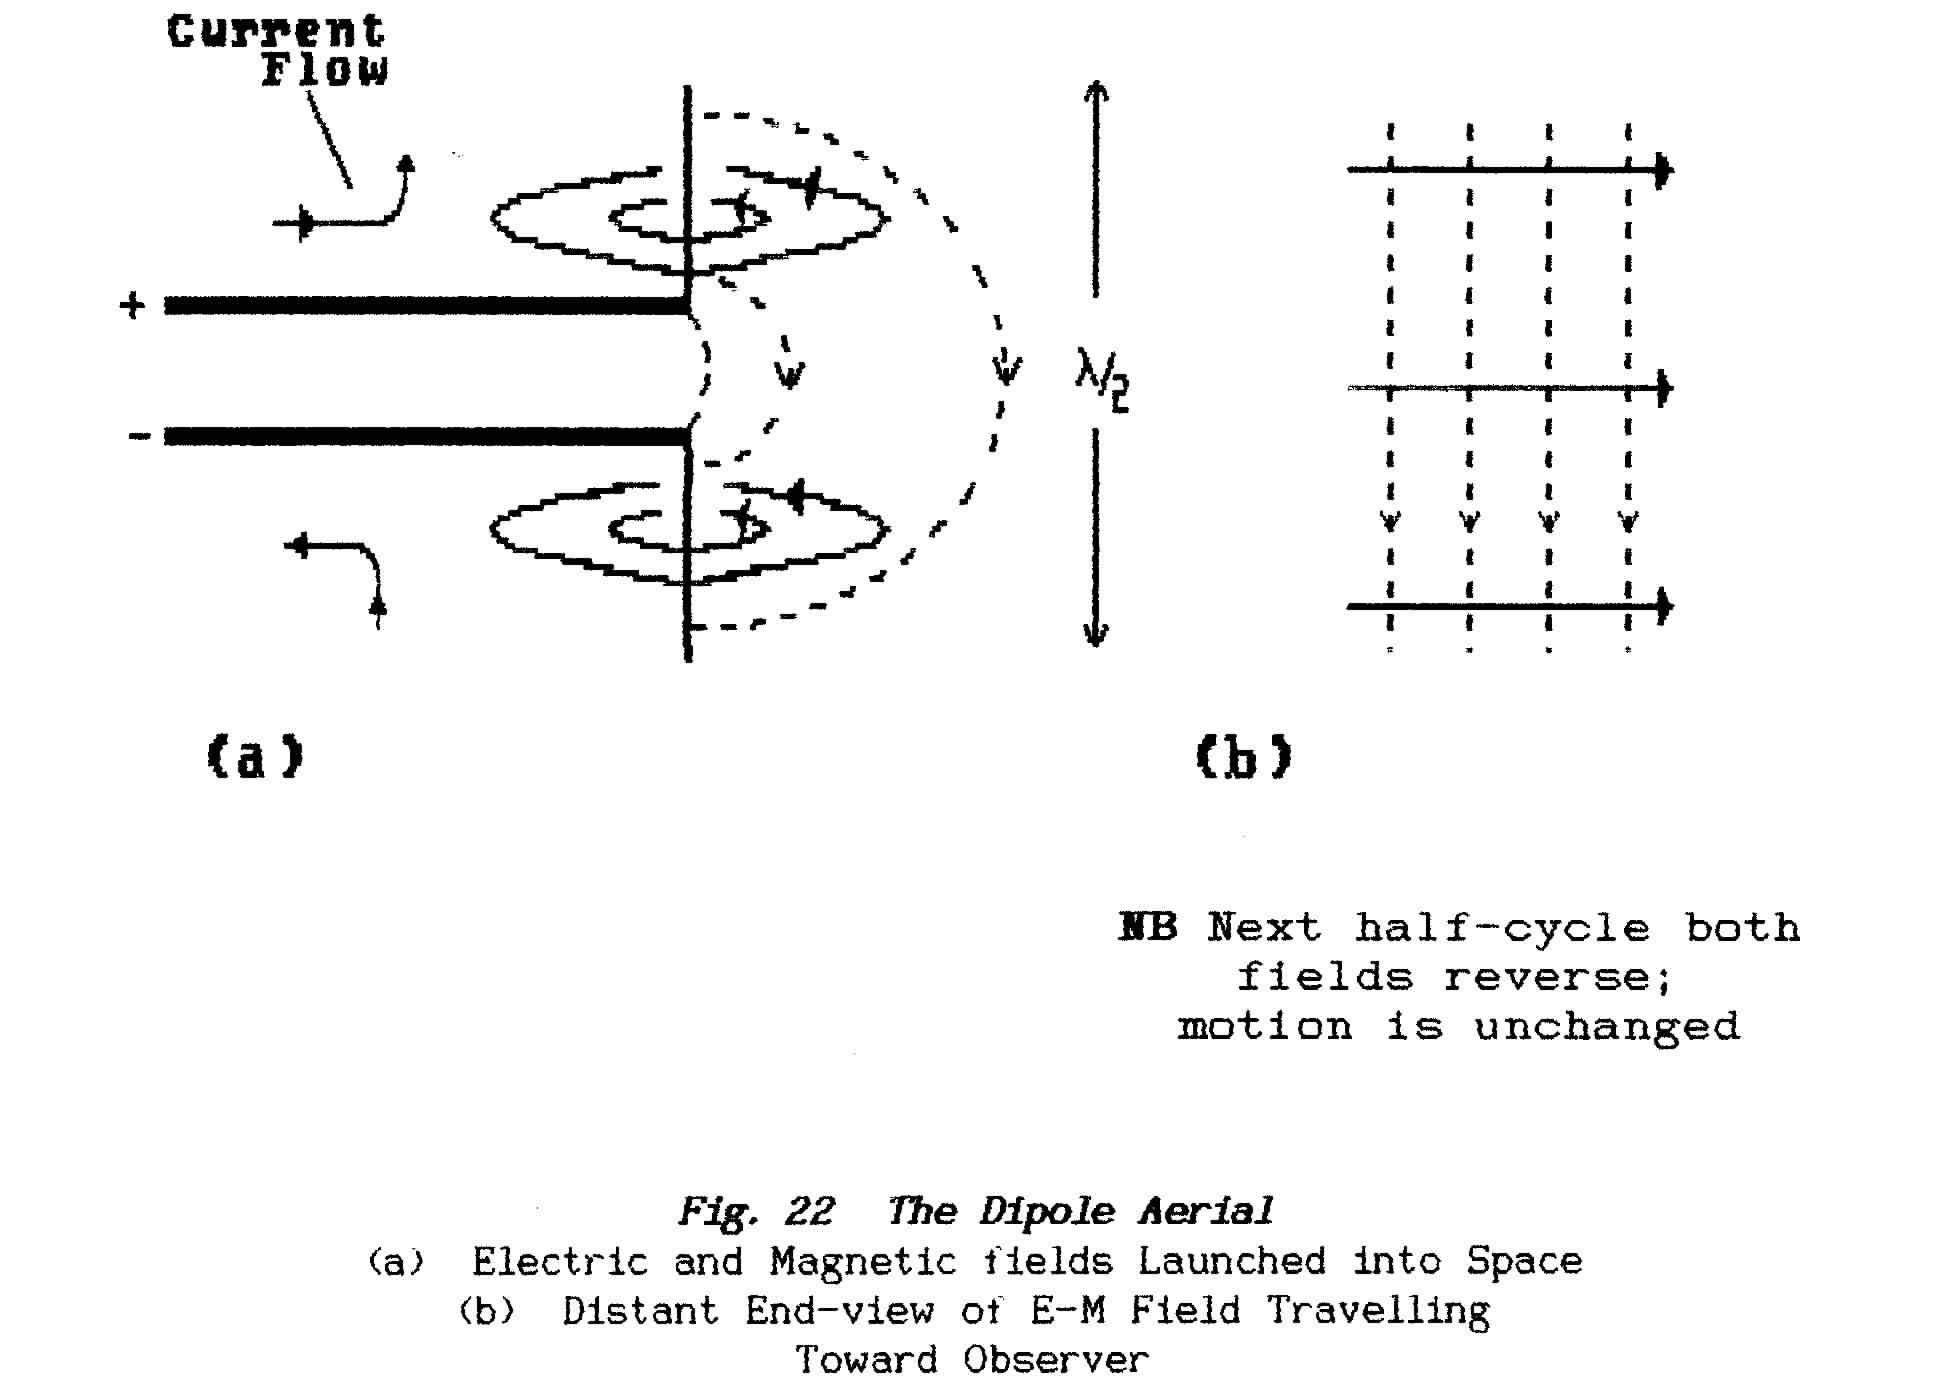 Fundamentals 2 Basic Radio Theory Active Antenna Aa 7 Hf Vhf Uhf 3 3000mhz As Shown In Fig22 To Obtain Maximum Leakage From The Line Requires That Magnetic Field Be Tilted Through 900 However End Of An Open Circuited